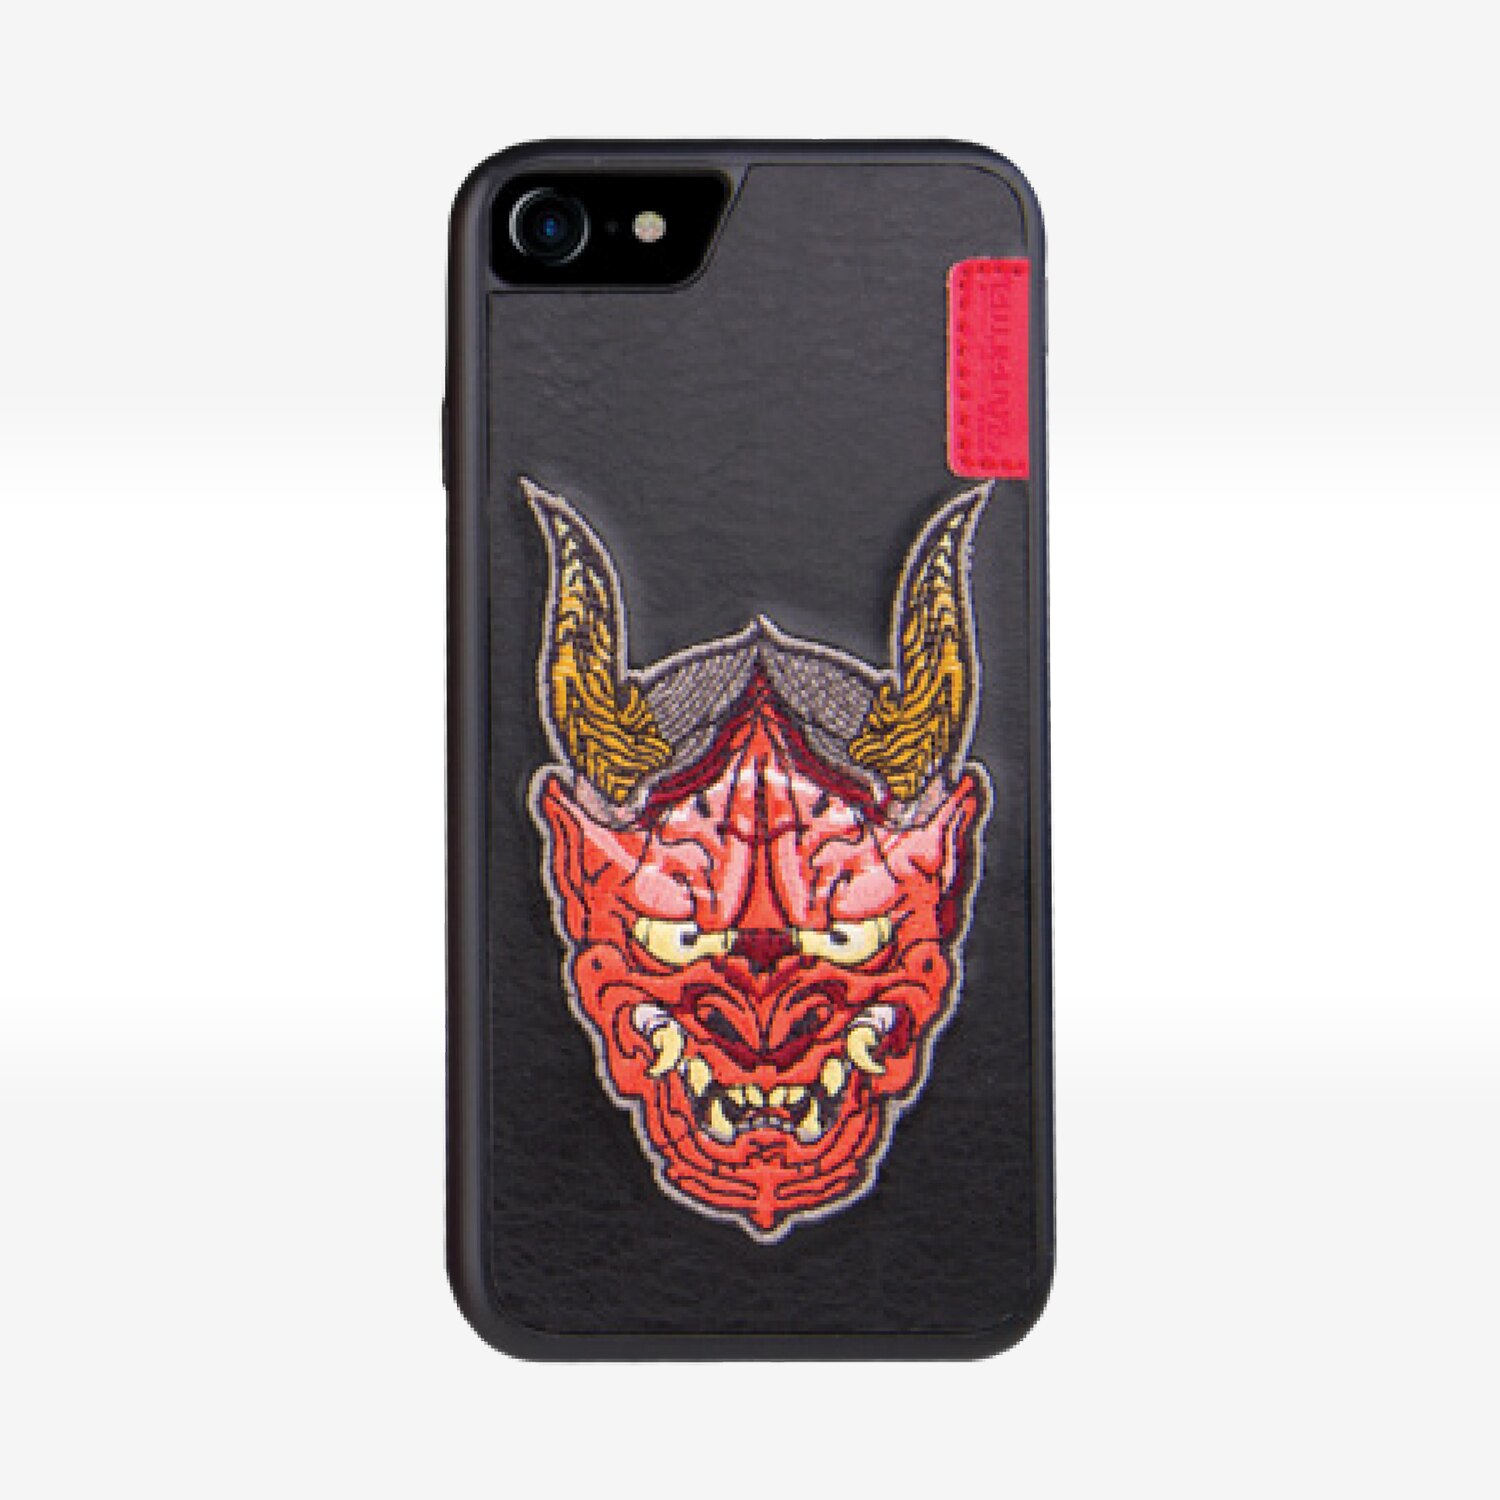 [預購]Skinarma IREZUMI iPhone 7 Plus刺繡背蓋 9